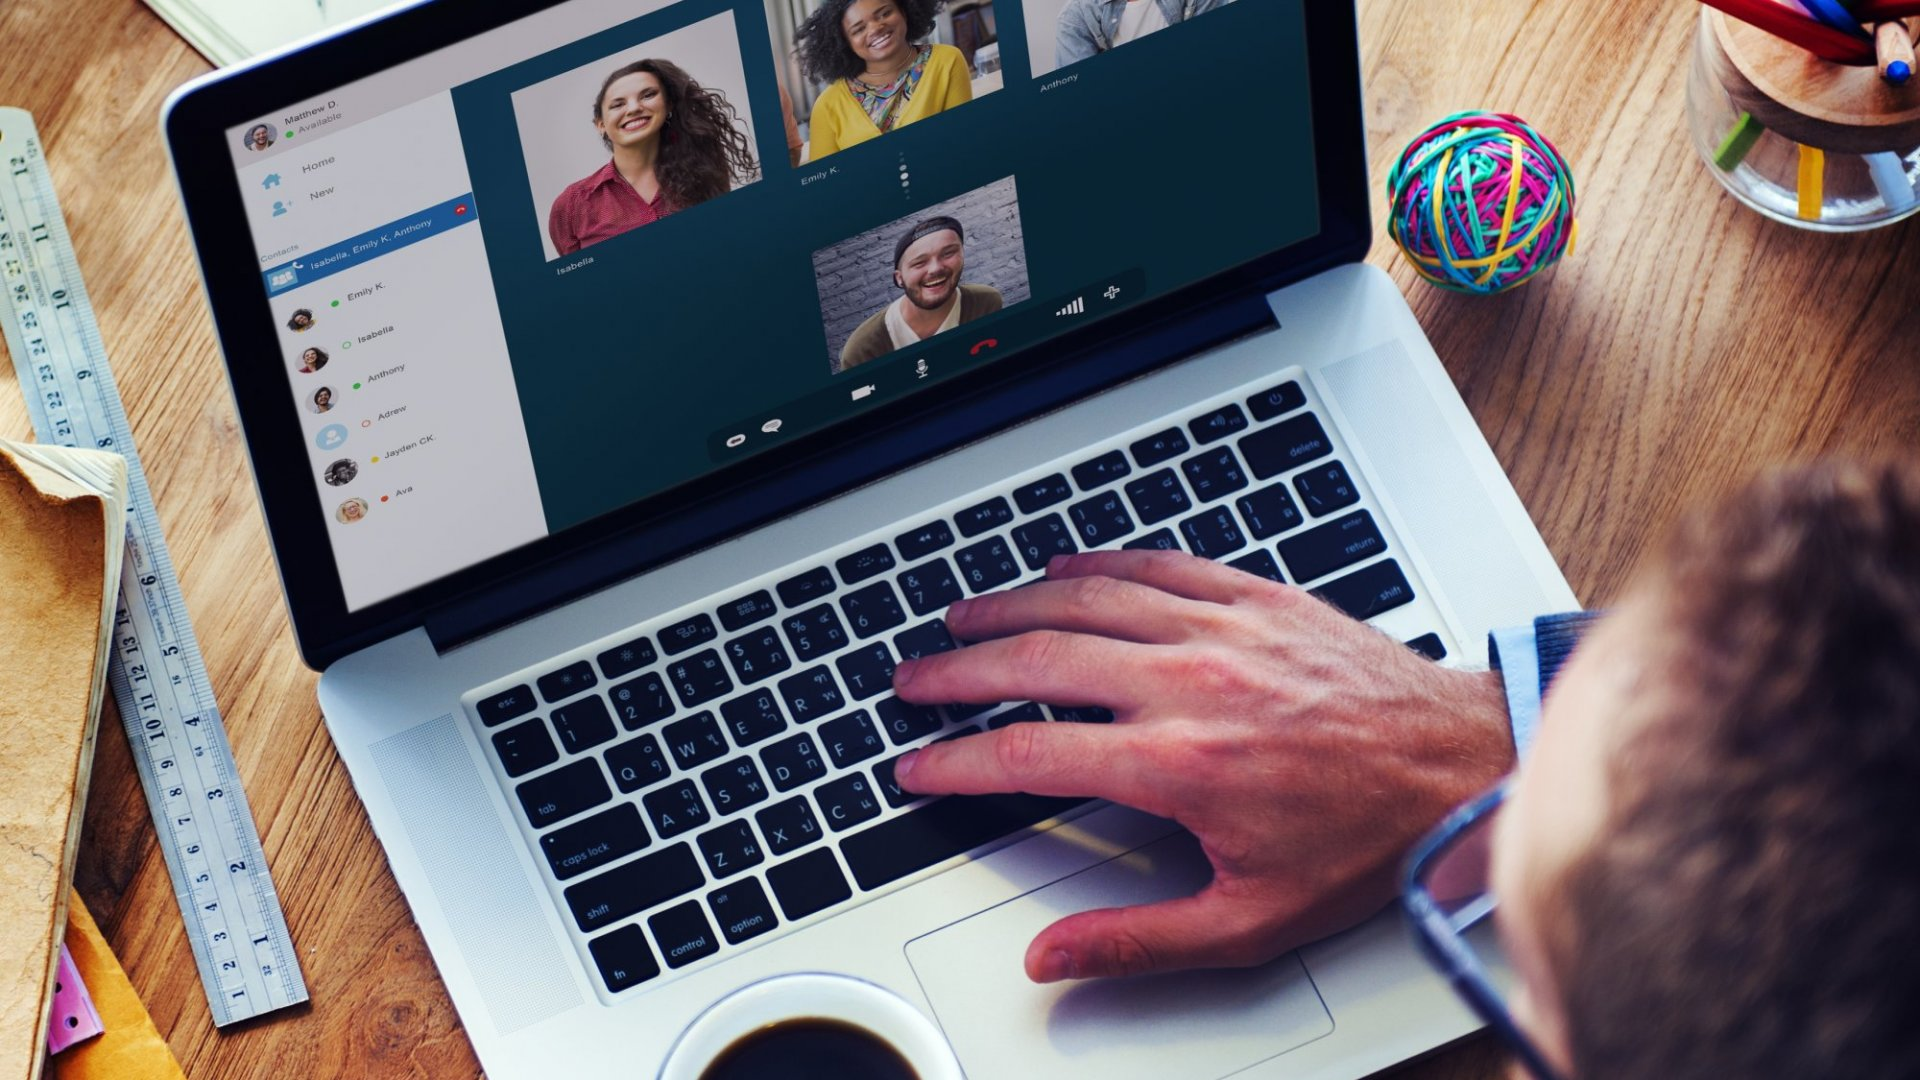 How to Build a Strong Culture of Connection and Engagement with Remote Employees